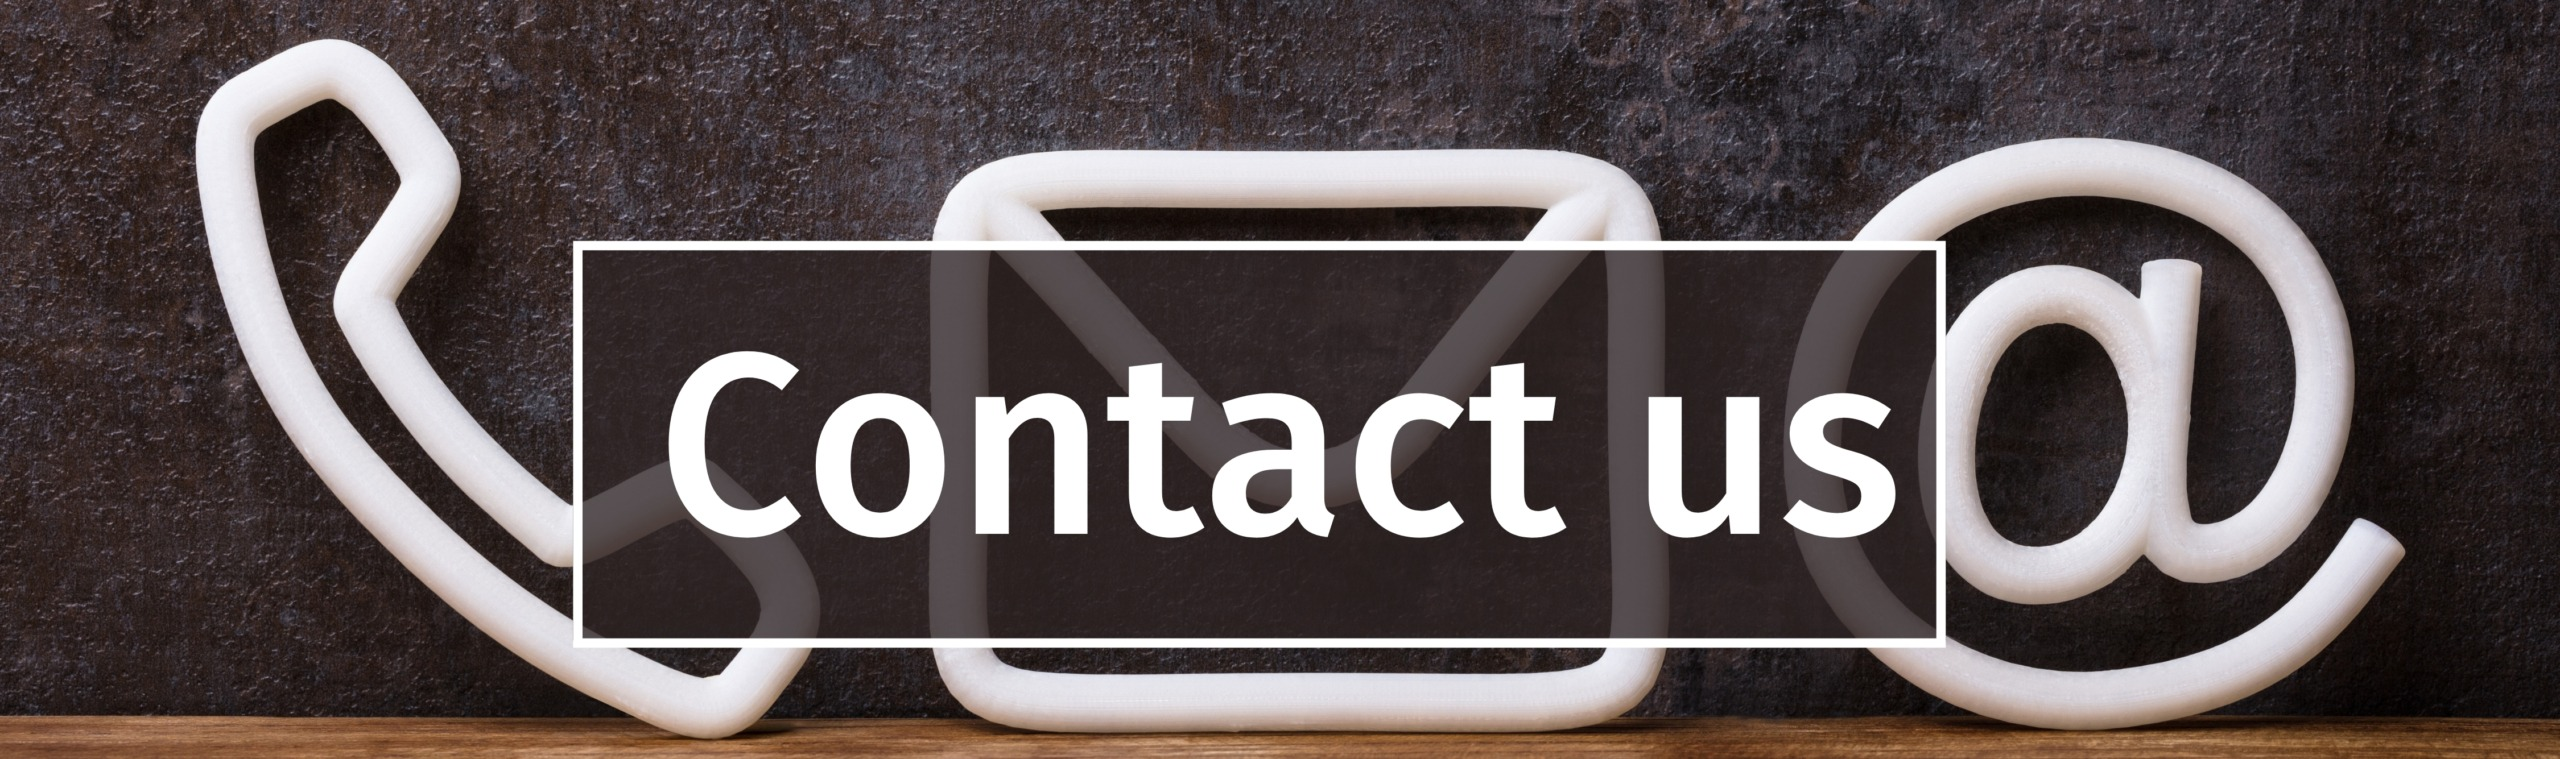 Page title: Contact us